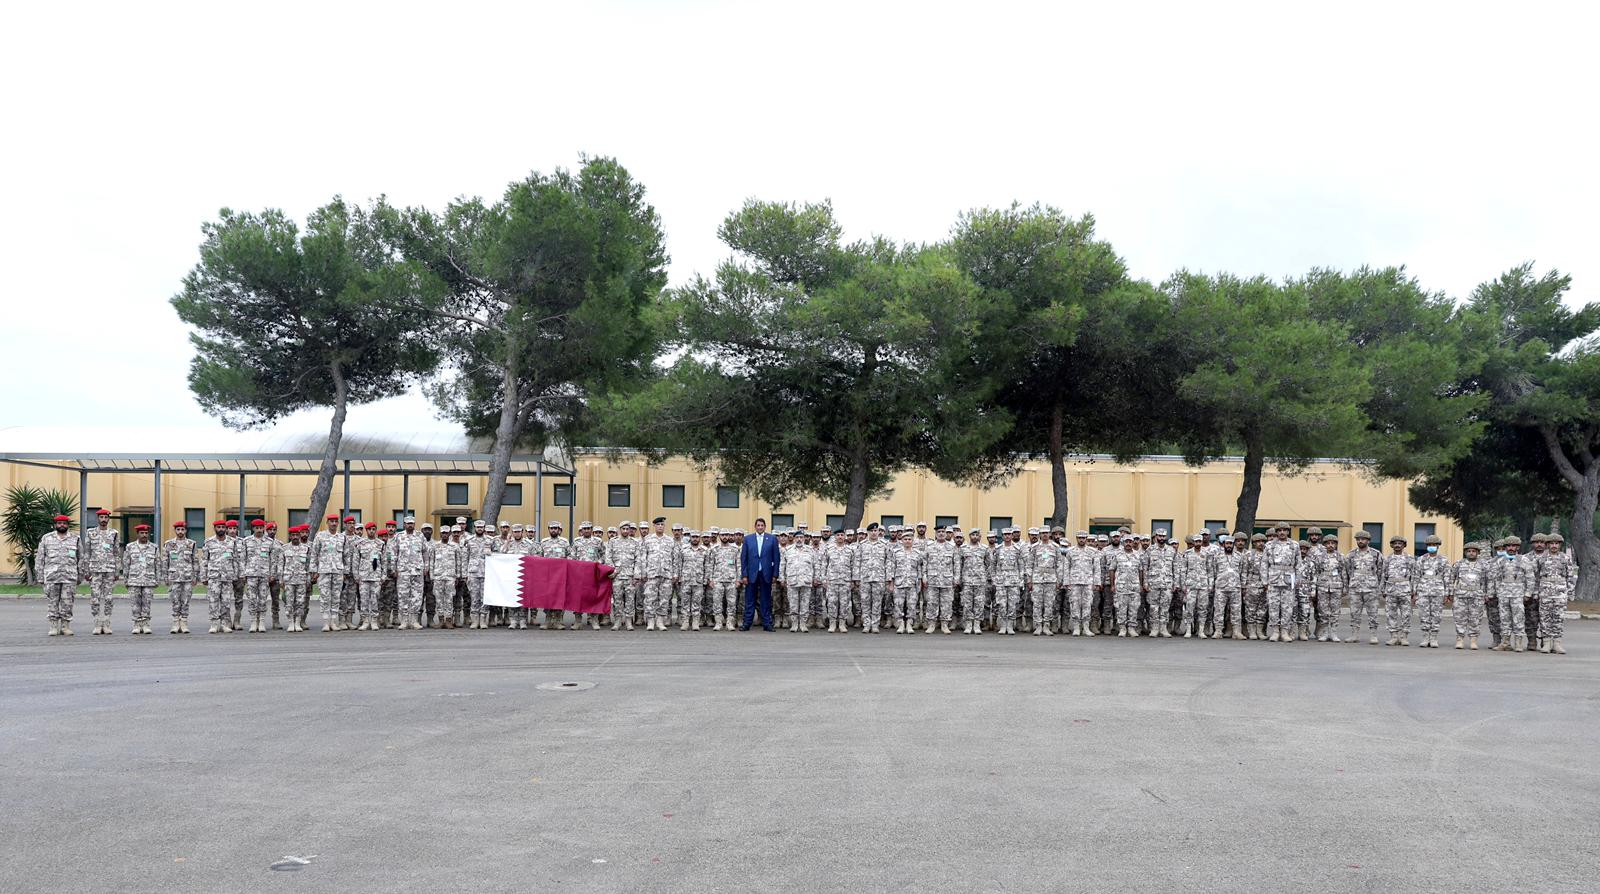 Chief of Staff Participates in Closing Activities of Steel Storm 2020 Exercise in Italy